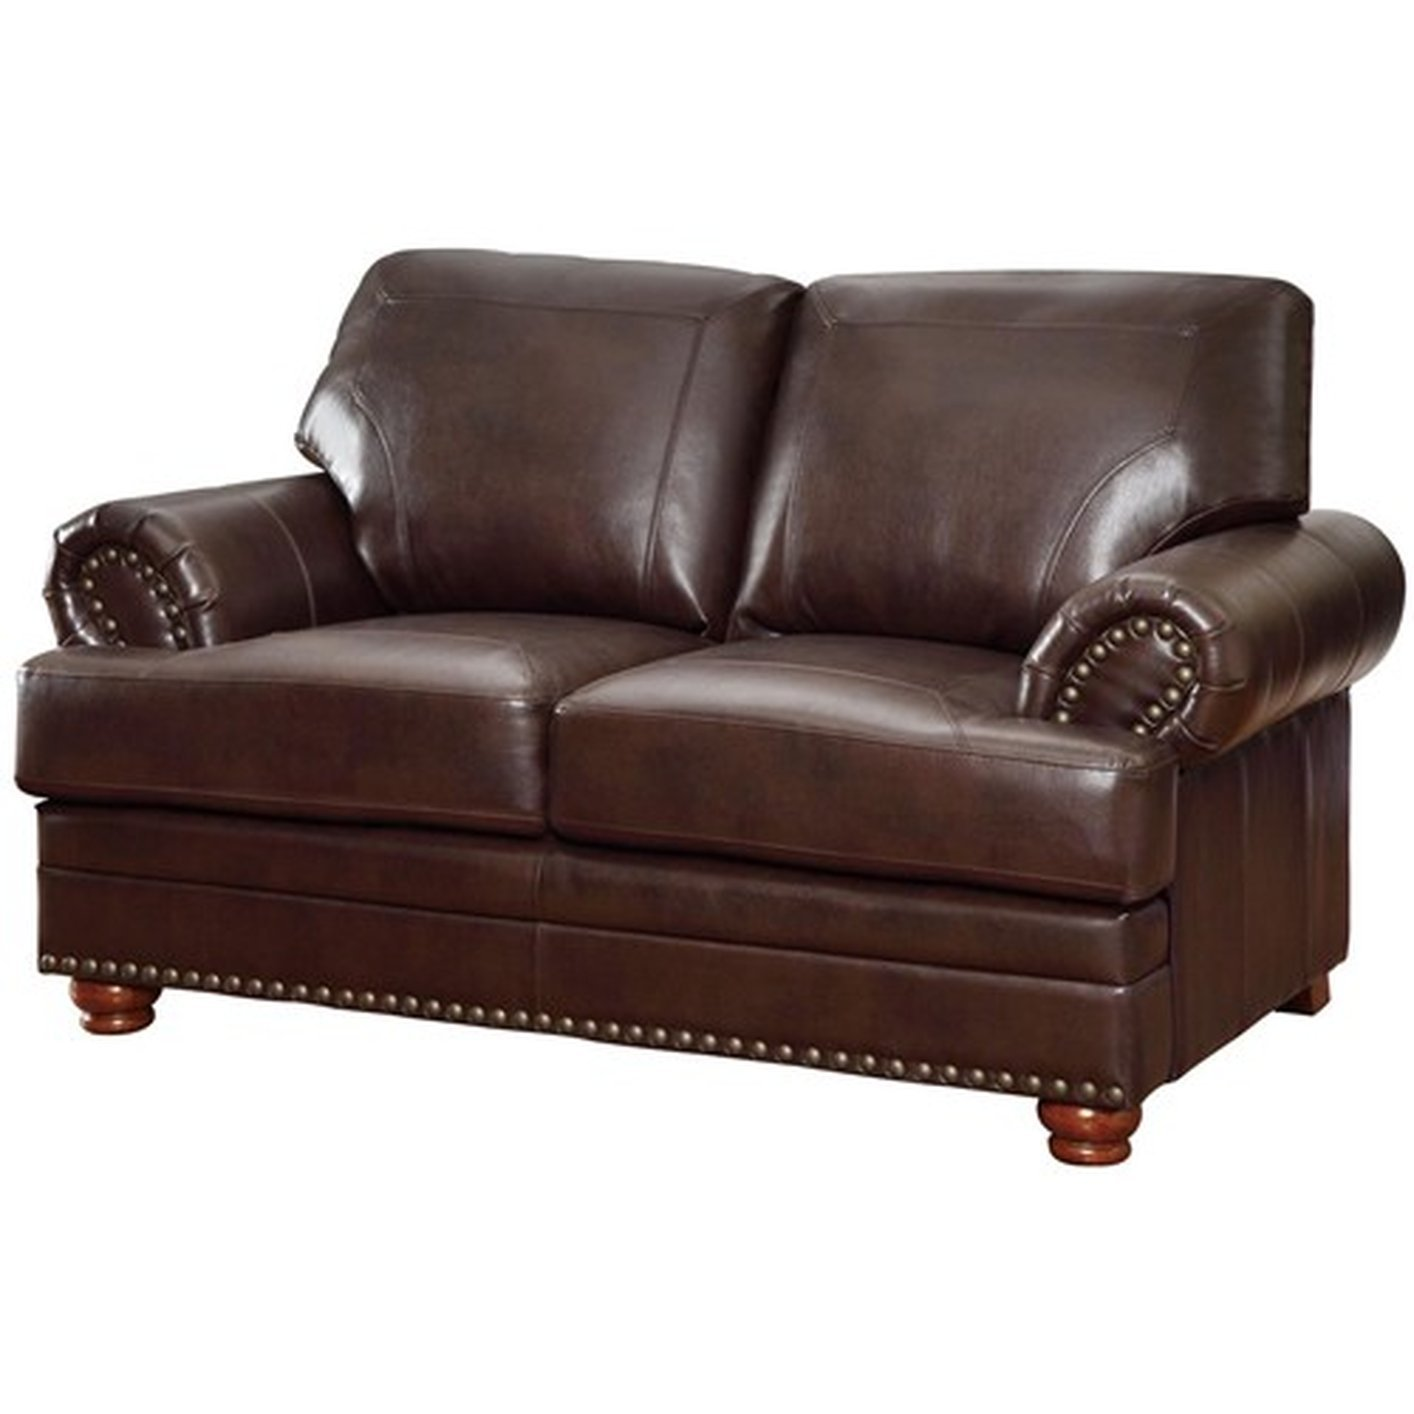 Coaster Colton 504412 Brown Leather Loveseat Steal A